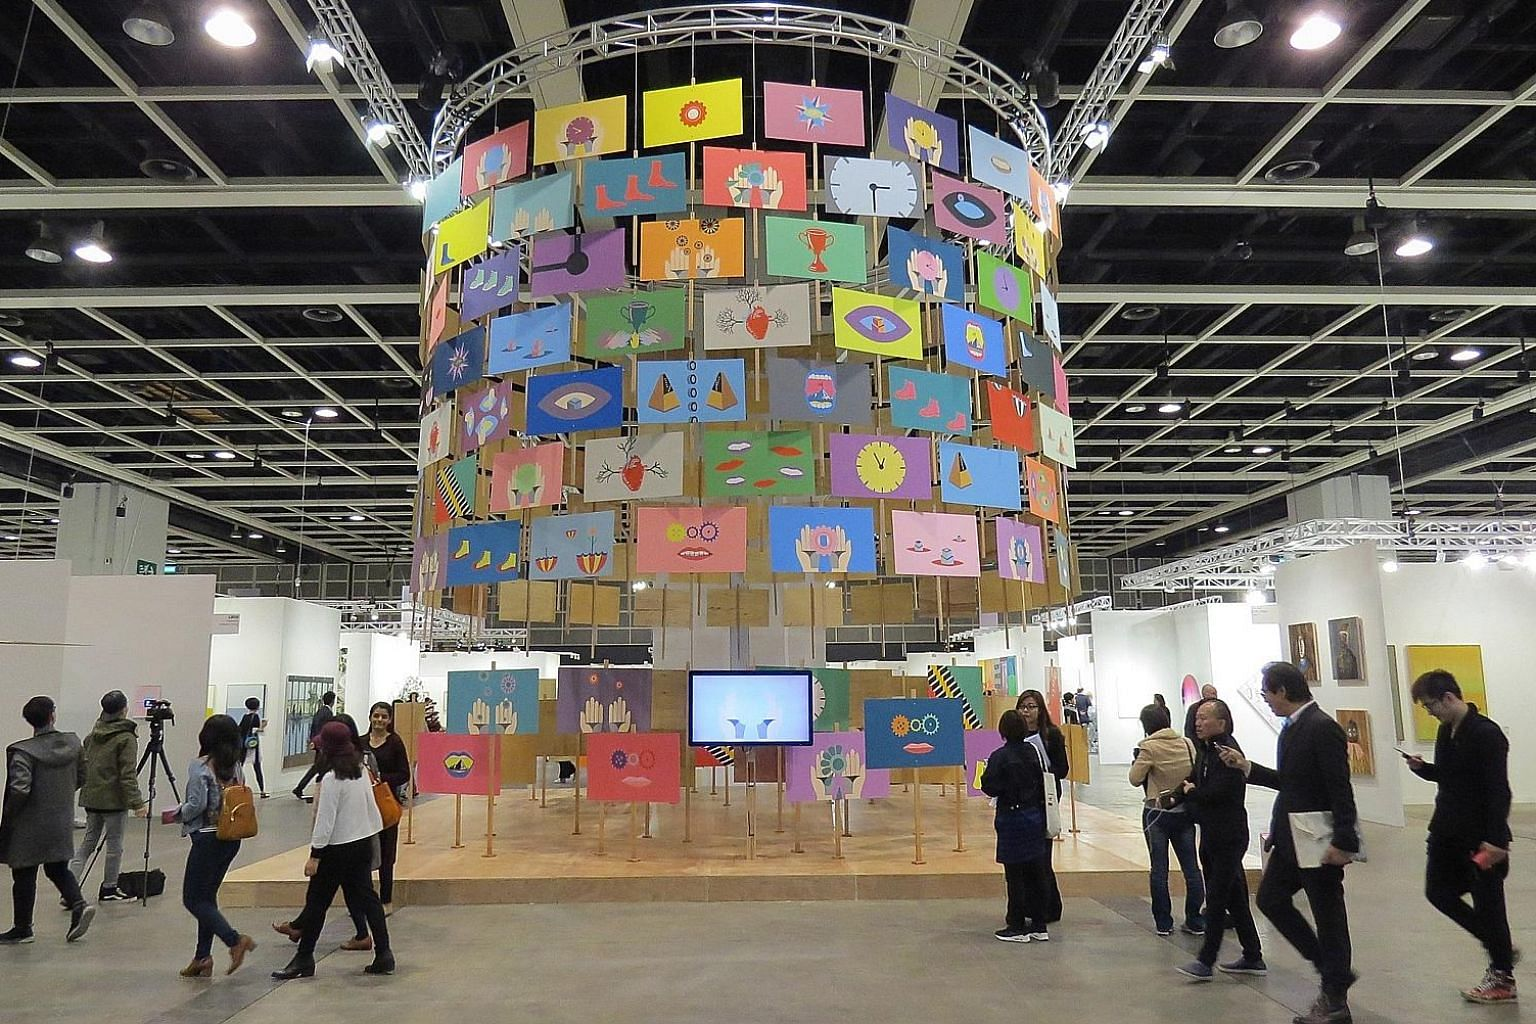 Run by MCH Group, Art Basel Hong Kong is a major stop on the global art fair circuit. MCH is launching ART SG in November 2019 with about 80 galleries from Singapore, South-east Asia and globally.